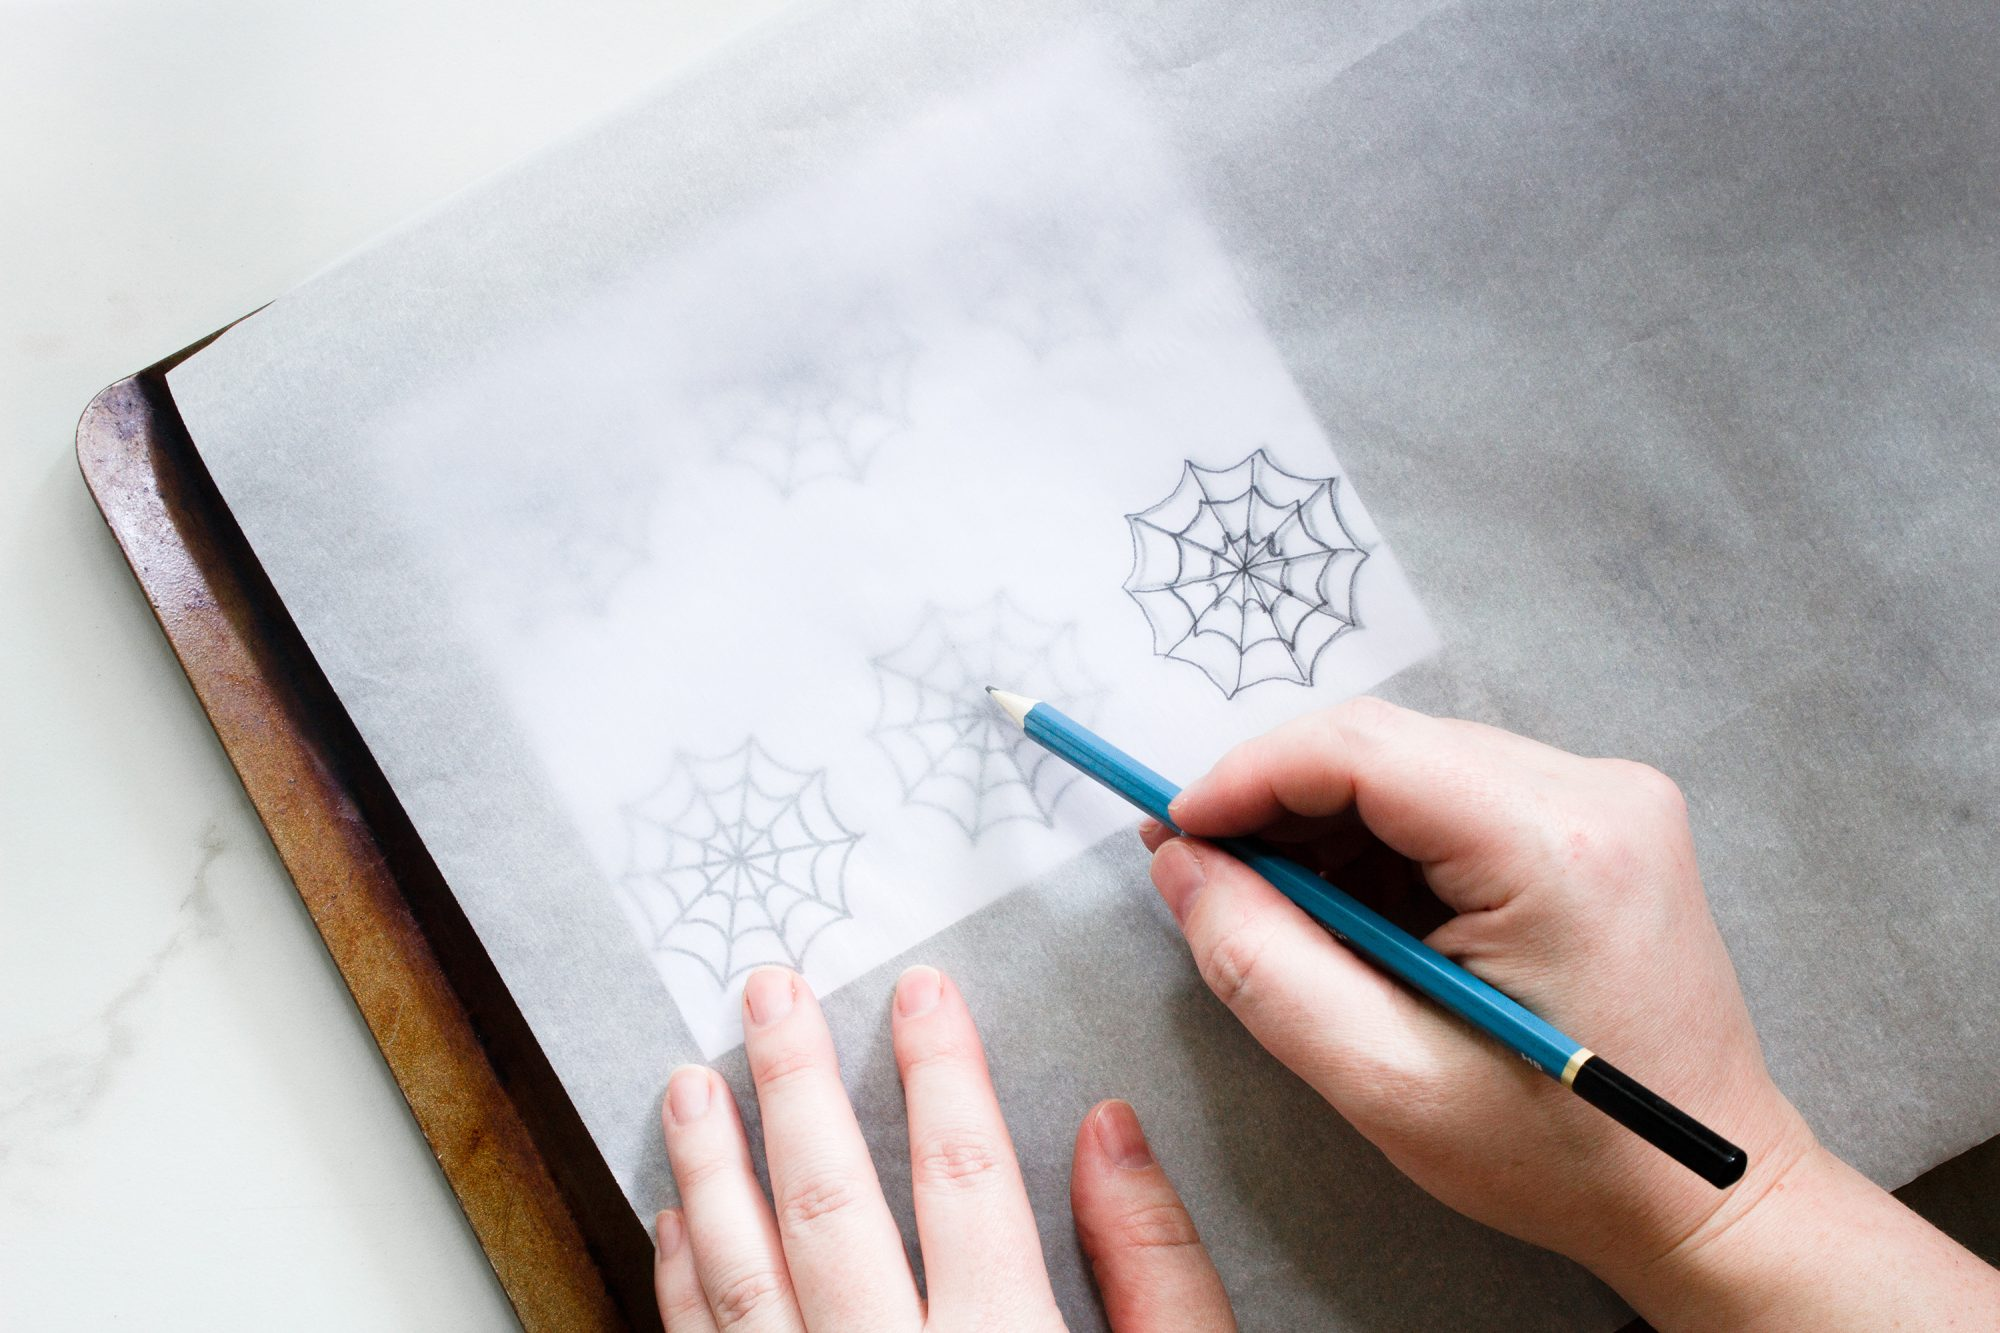 tracing spiderwebs on parchment paper